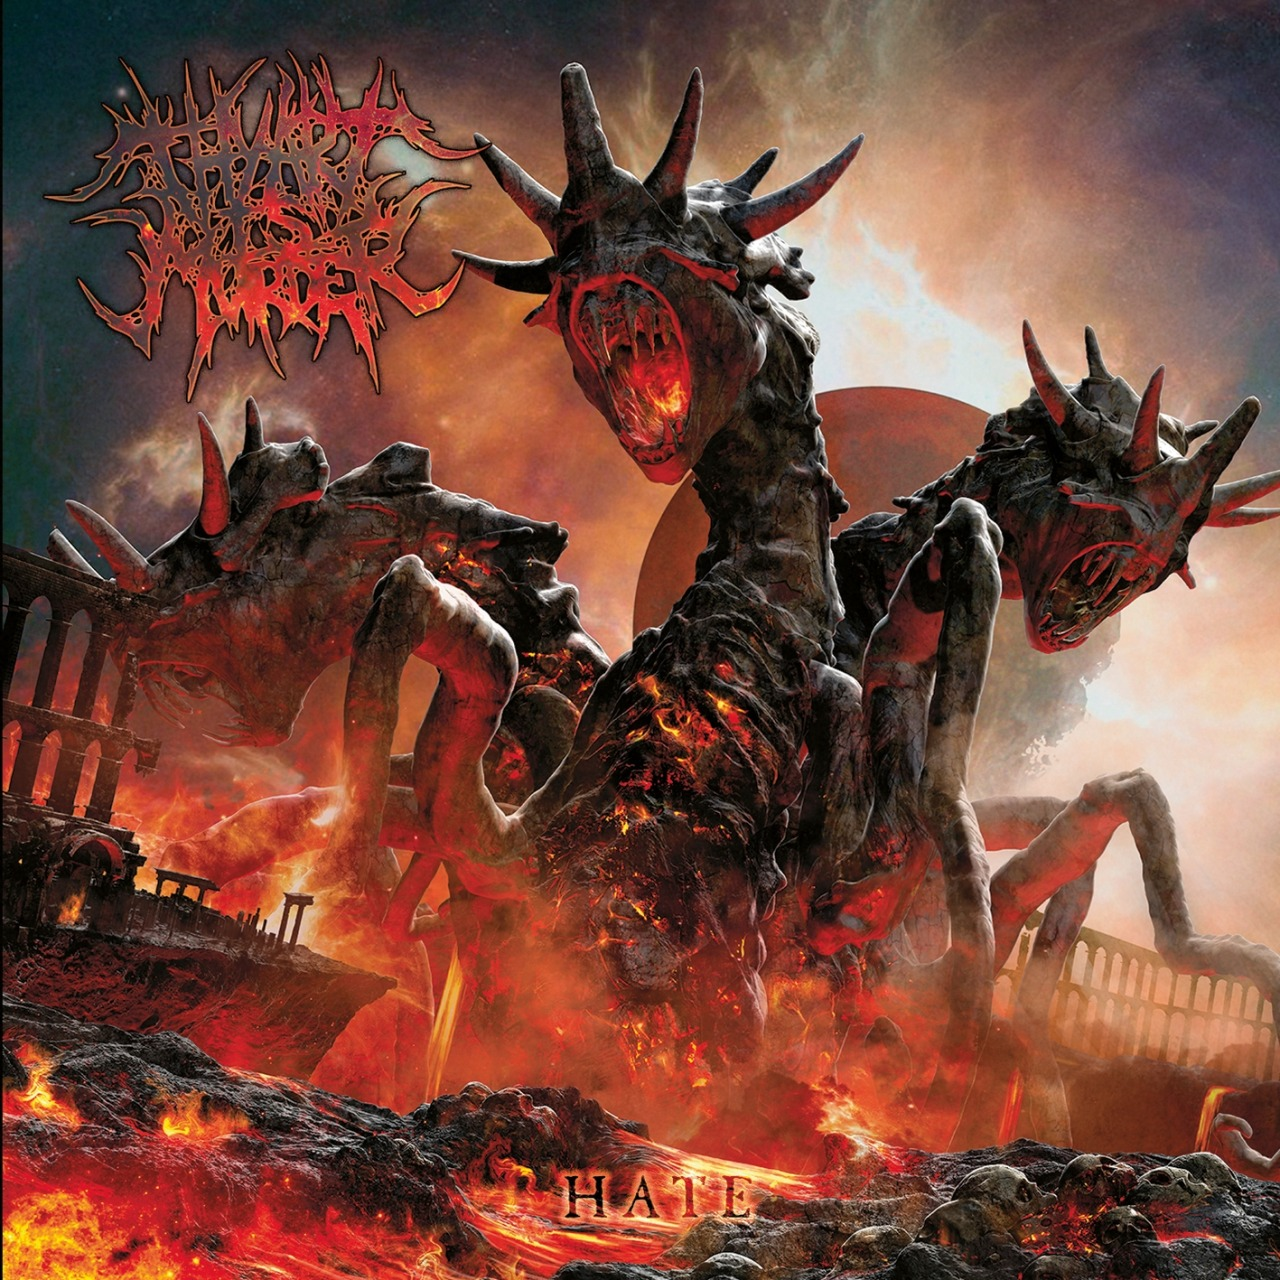 Review of Hate by Thy Art Is Murder on Nuclear Blast Records: http://www.culturebomb.net/2013/04/09/review-thy-art-is-murder-hate-nuclear-blast-records/